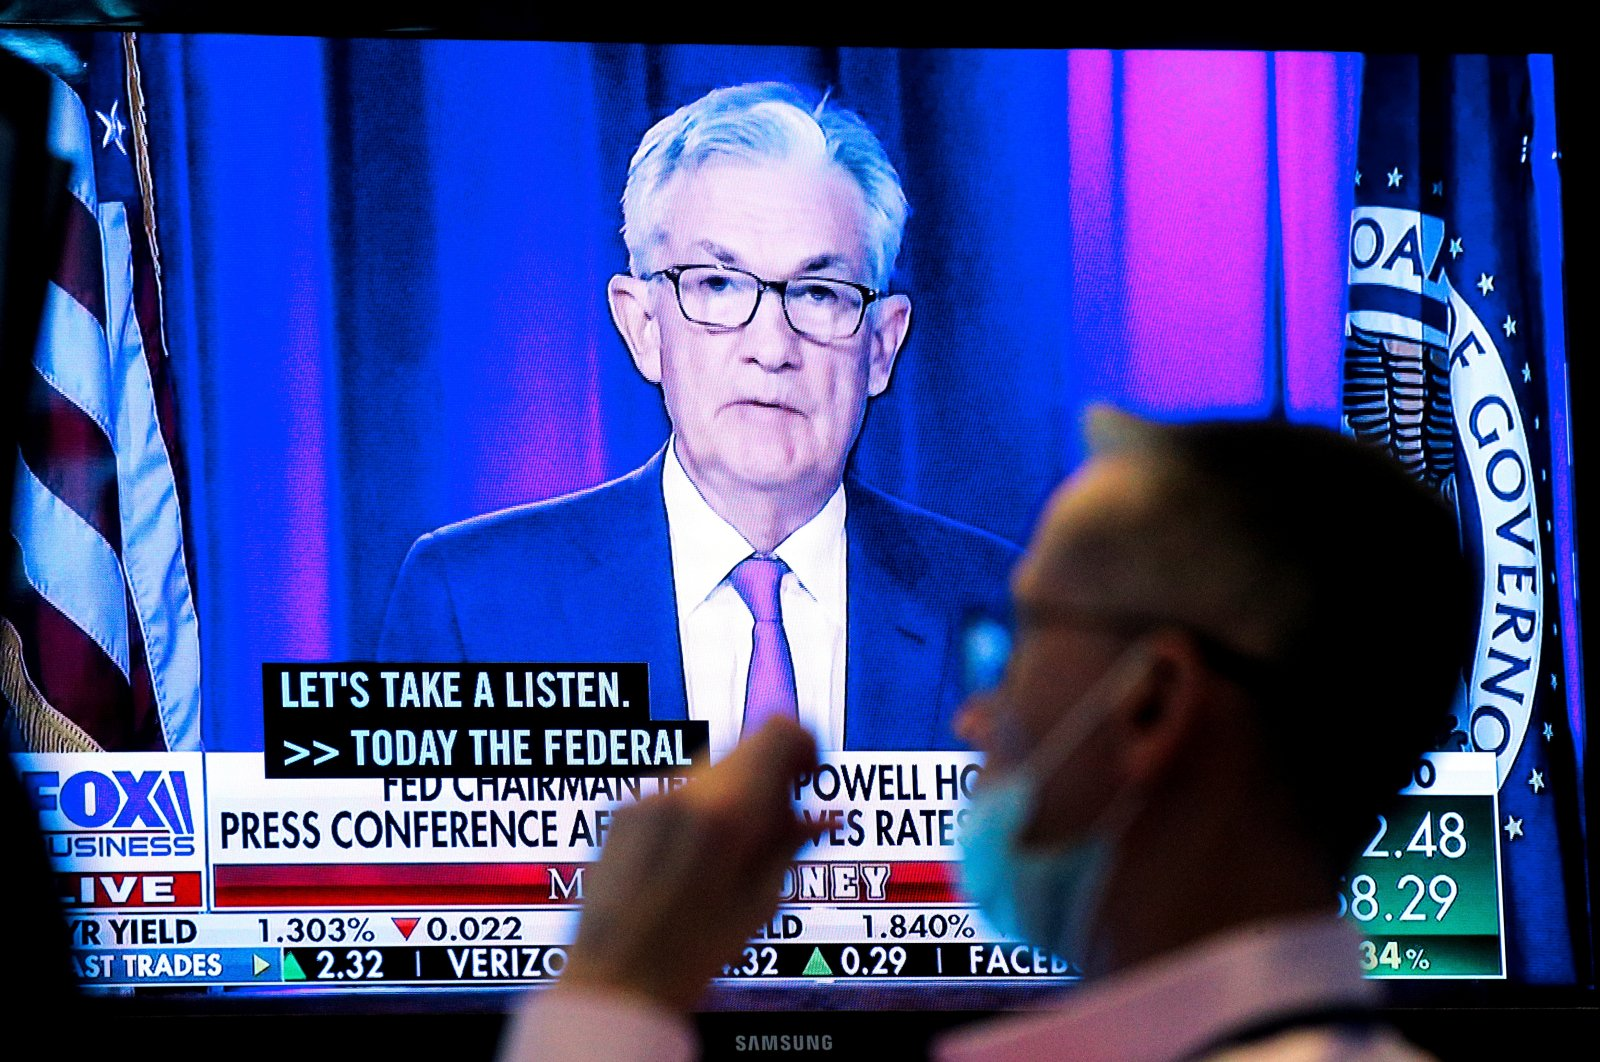 A screen displays a statement by Federal Reserve (Fed) Chair Jerome Powell following the U.S. Federal Reserve's announcement, as a trader works on the trading floor of the New York Stock Exchange (NYSE) in New York City, U.S., Sept. 22, 2021. (Reuters Photo)